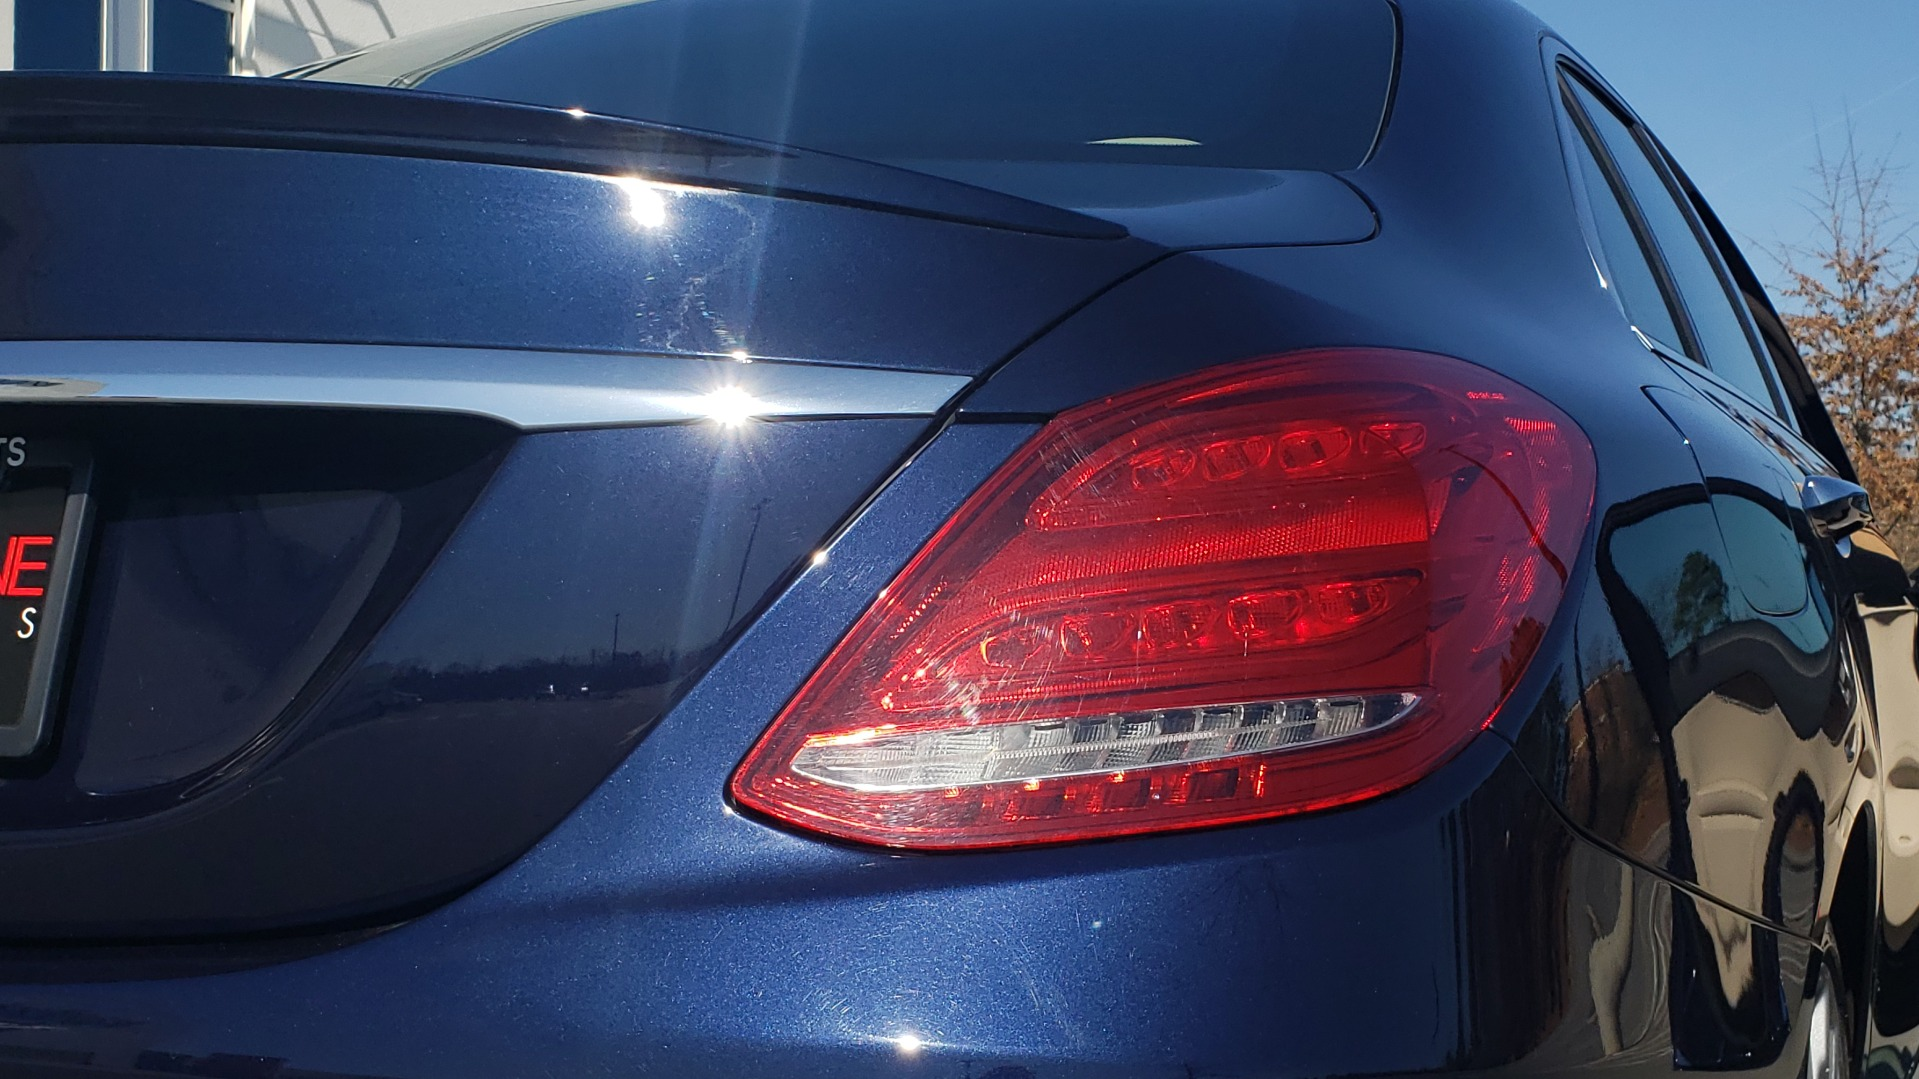 Used 2018 Mercedes-Benz C-CLASS C 300 PREMIUM / SUNROOF / BURMESTER / BSM / REARVIEW for sale $23,995 at Formula Imports in Charlotte NC 28227 25